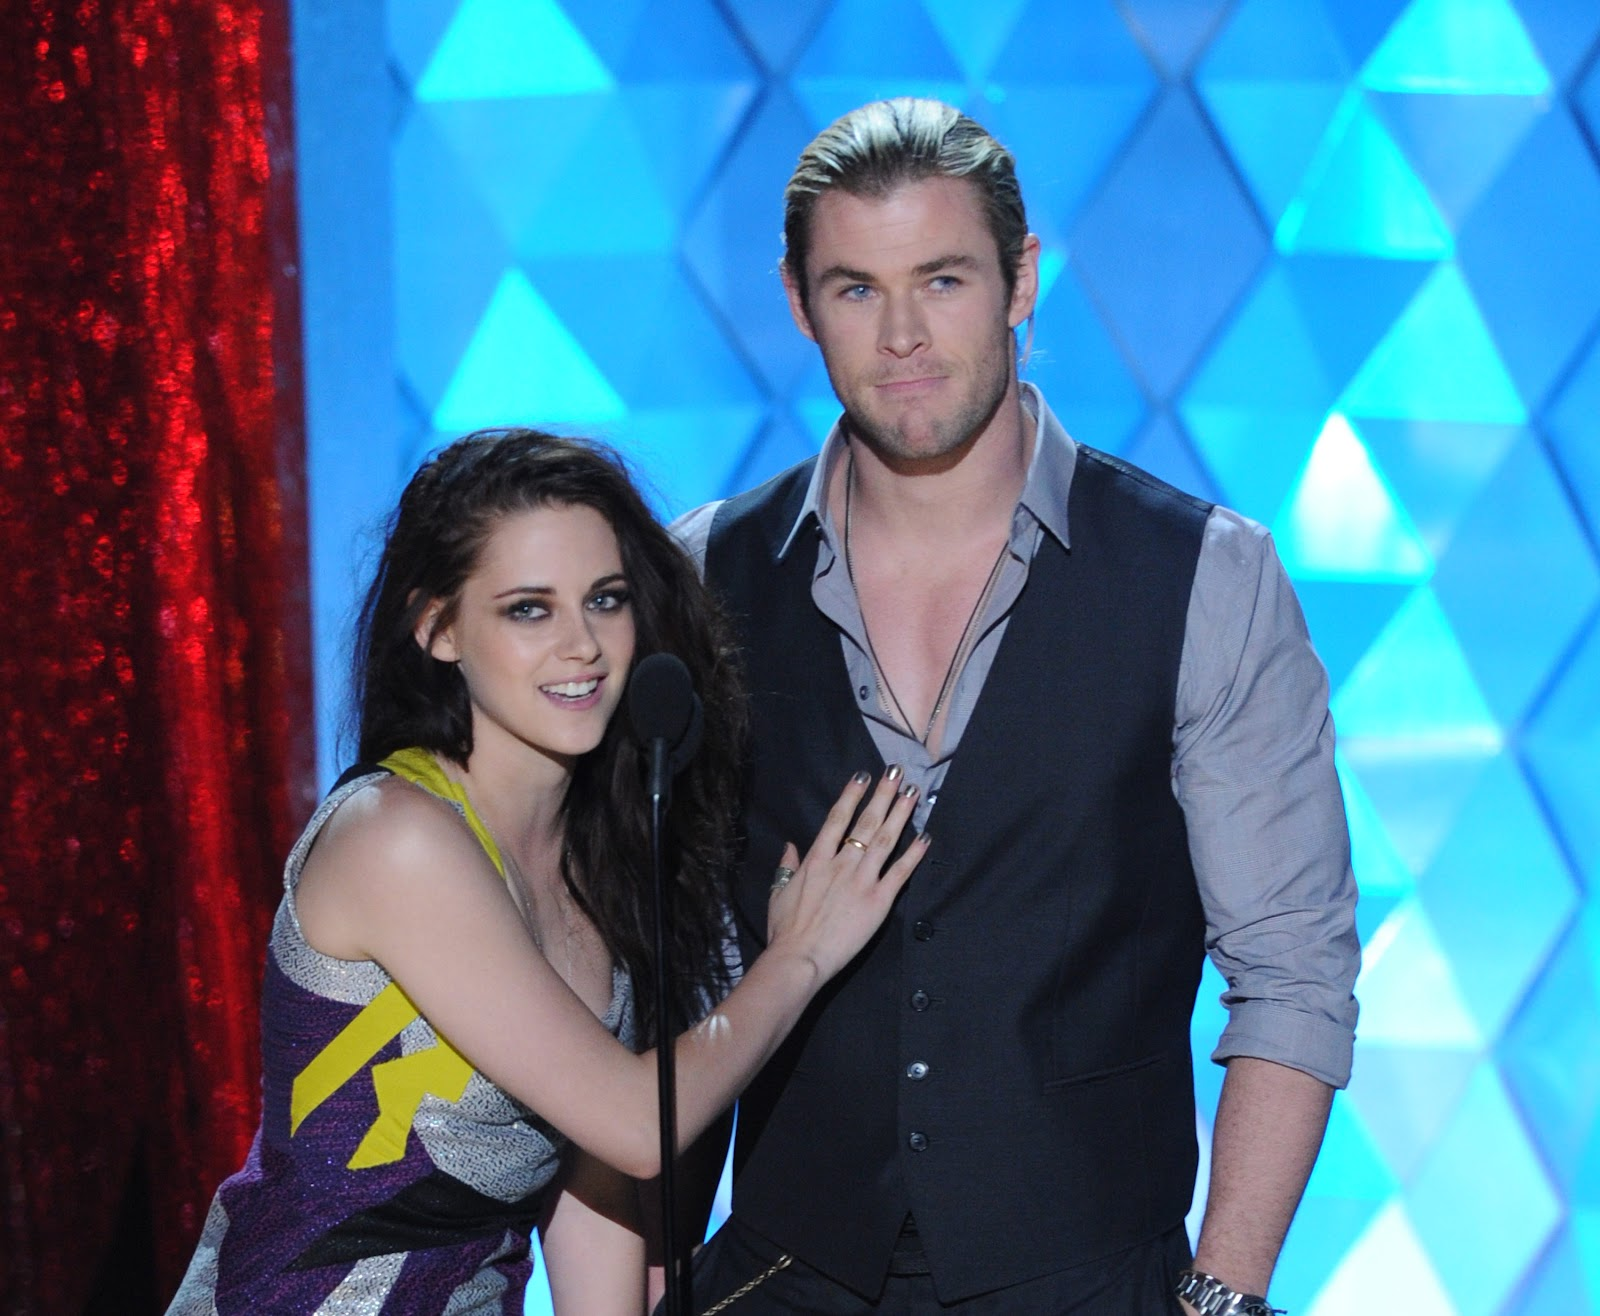 http://3.bp.blogspot.com/-lbVad9syPFM/T8yBaOL5K9I/AAAAAAAAPfs/Cm9XRvBO1M4/s1600/Kristen+Stewart+and+Chris+Hemsworth++at+the+2012+MTV+Movie+Awards.jpg